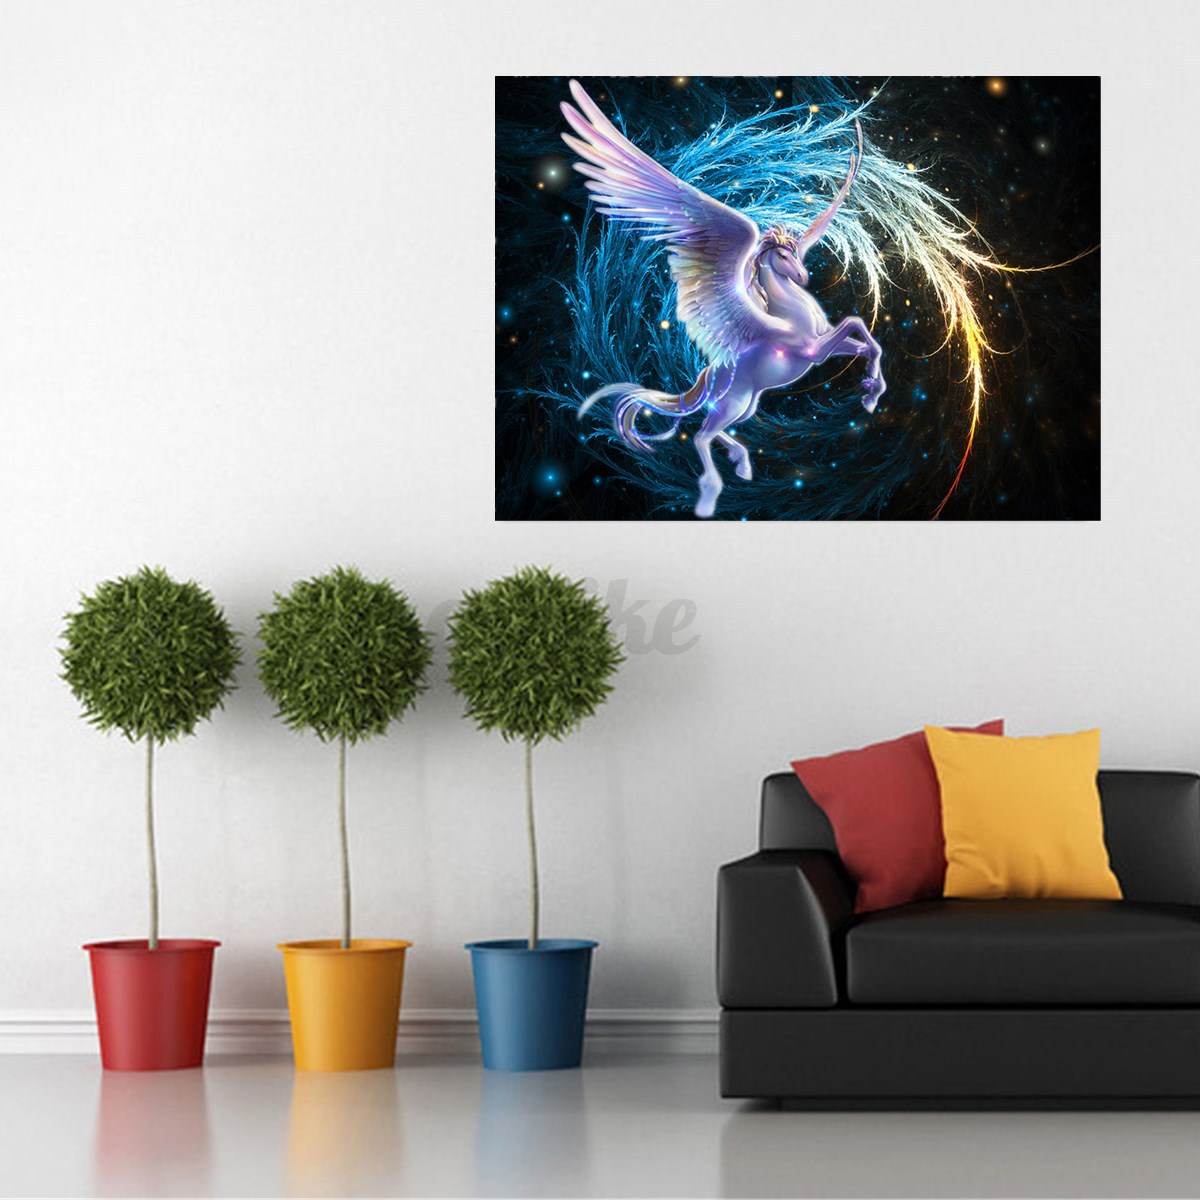 Diy Galaxy Wall Decor : D diamond pegasus galaxy diy painting embroidery cross